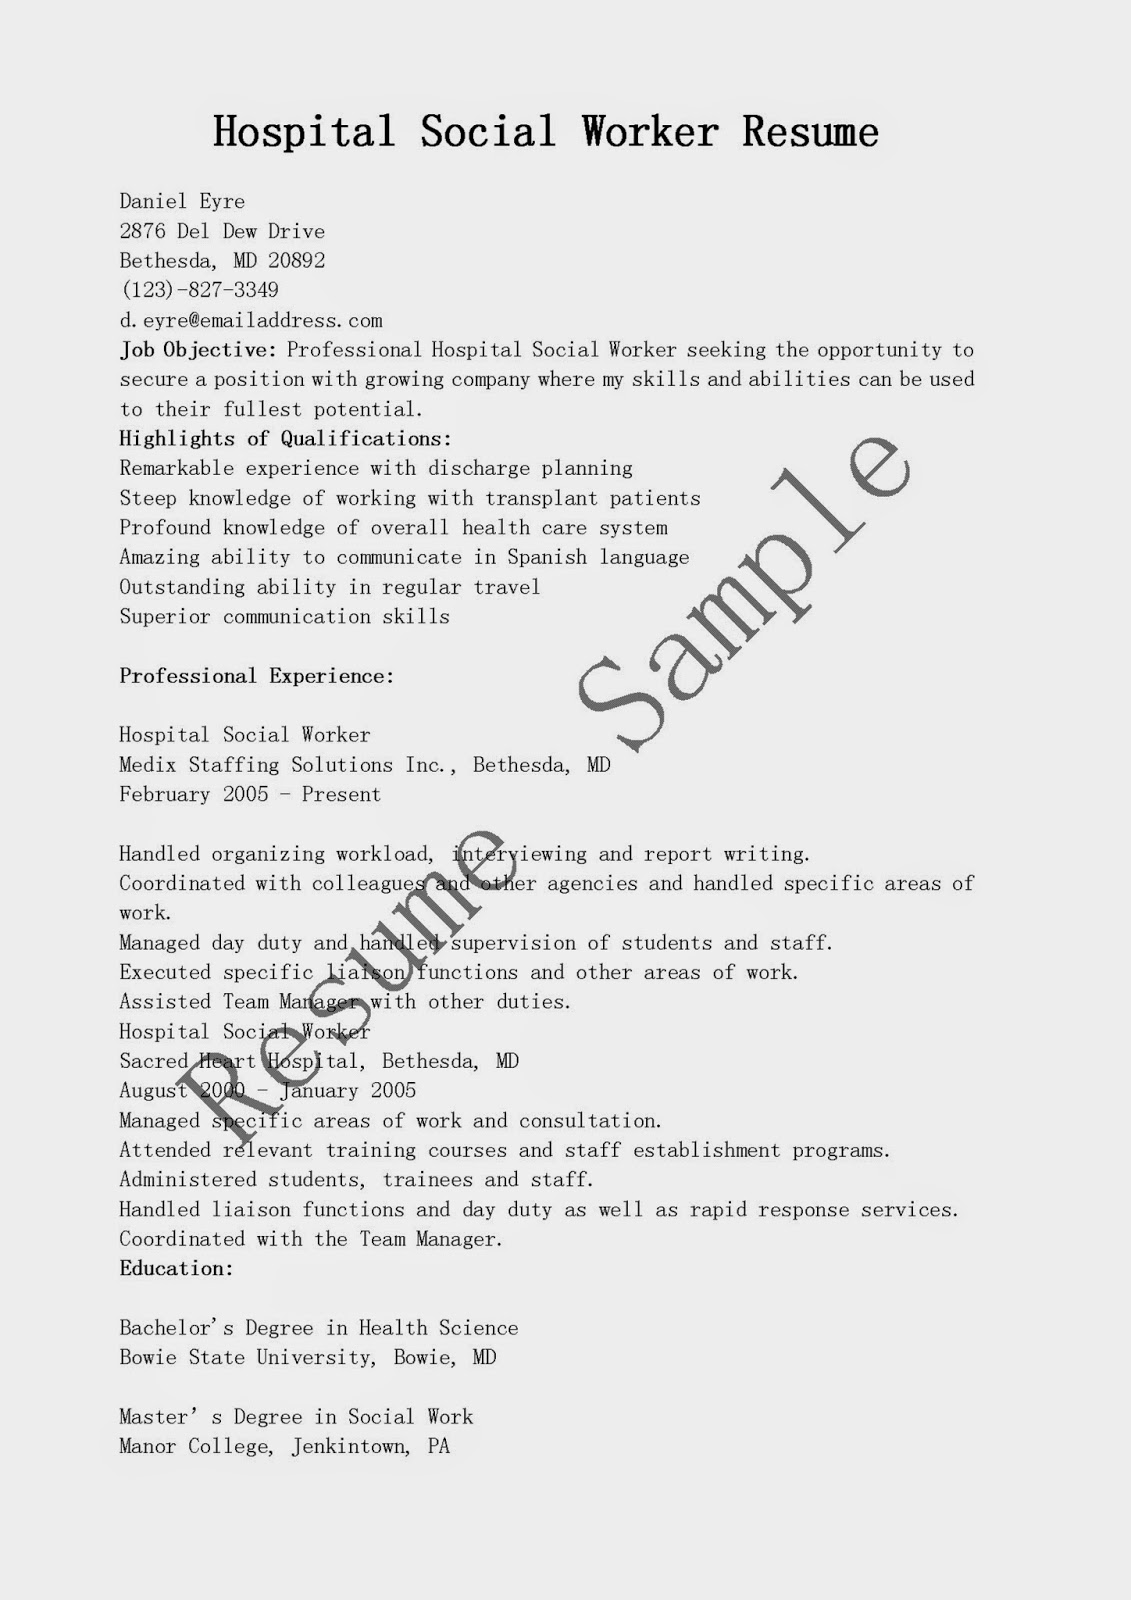 Resume Template   Blank Resumes Free For Microsoft Word Inside        Alib Cilookus Resume Template New Resume Templates Rn Nursing Ideas